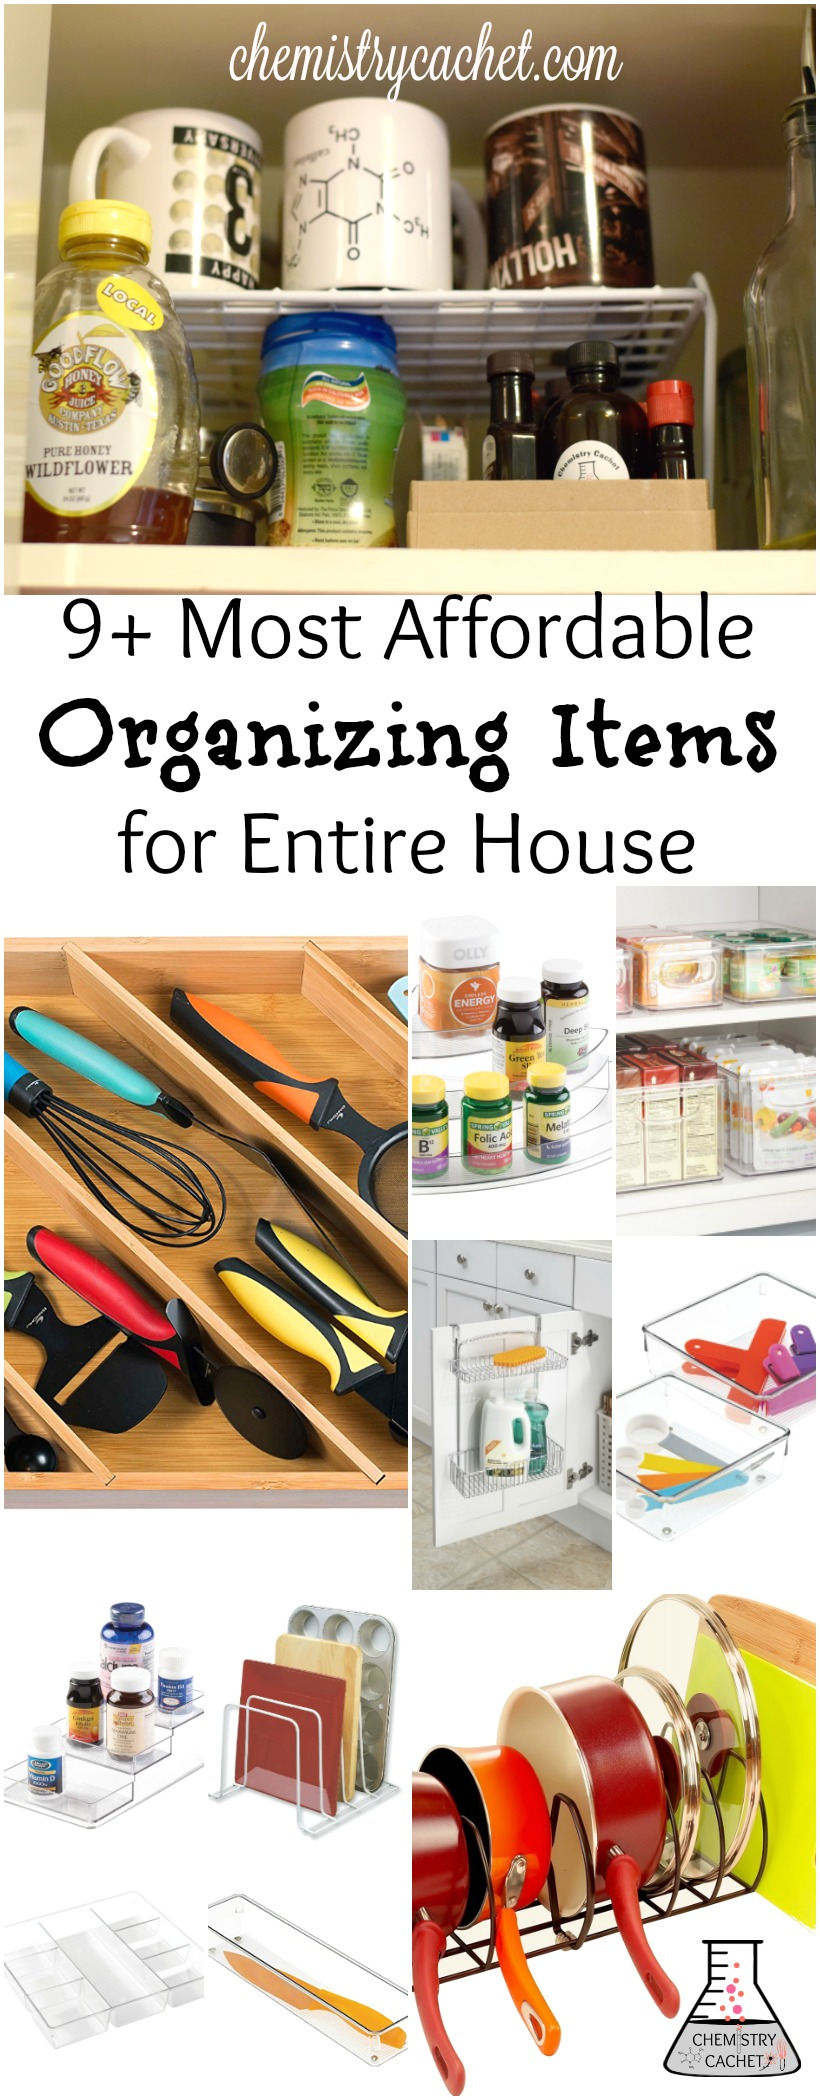 + Most Affordable Organizing Items for Entire House on chemistrycachet.com